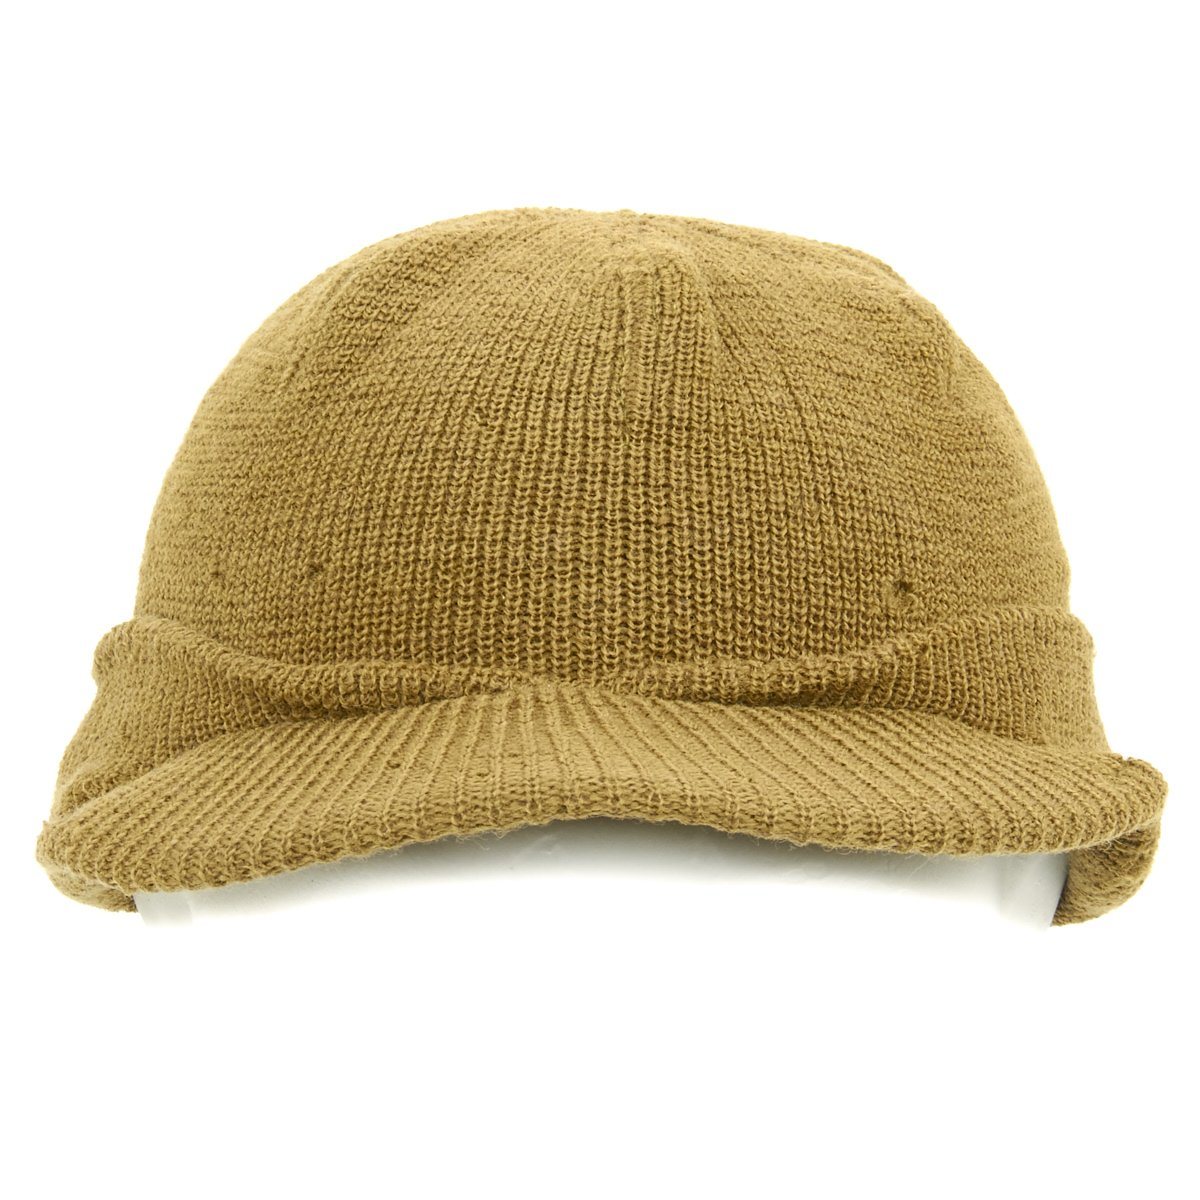 0b5157c5f925db Original U.S. WWII Army M1941 Wool Jeep Cap – International Military ...